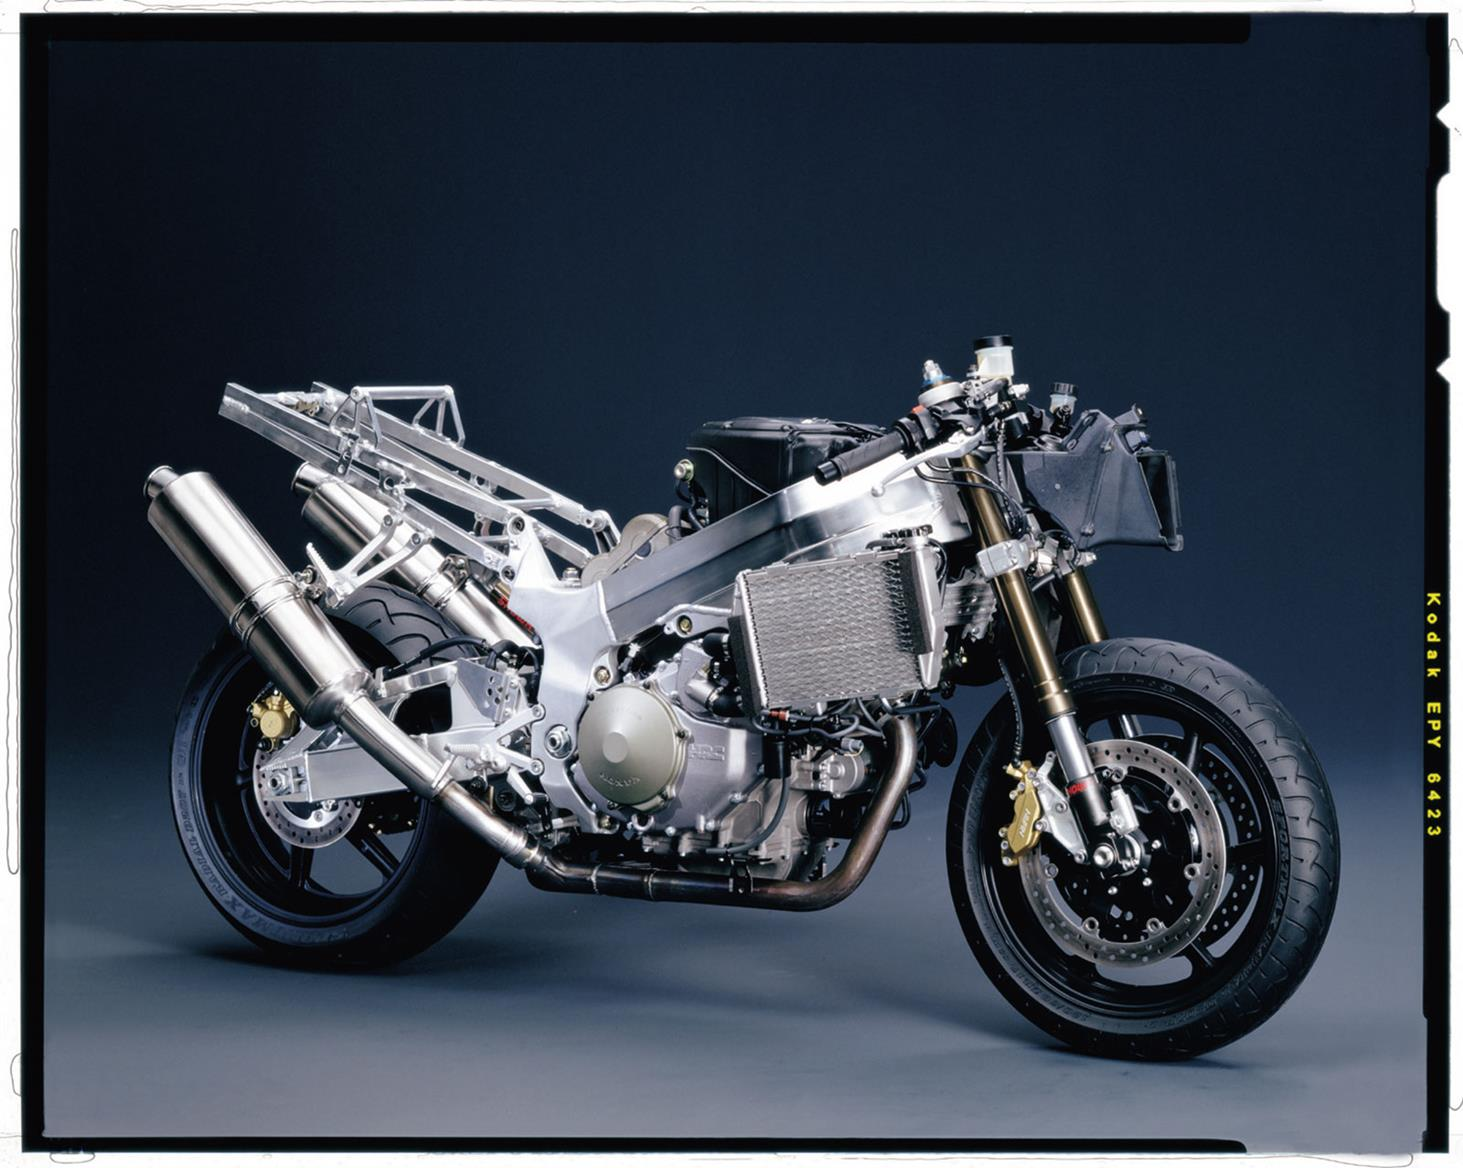 19 January 2000 Honda Vtr1000 Sp1 Rc51 The First Test Mcn